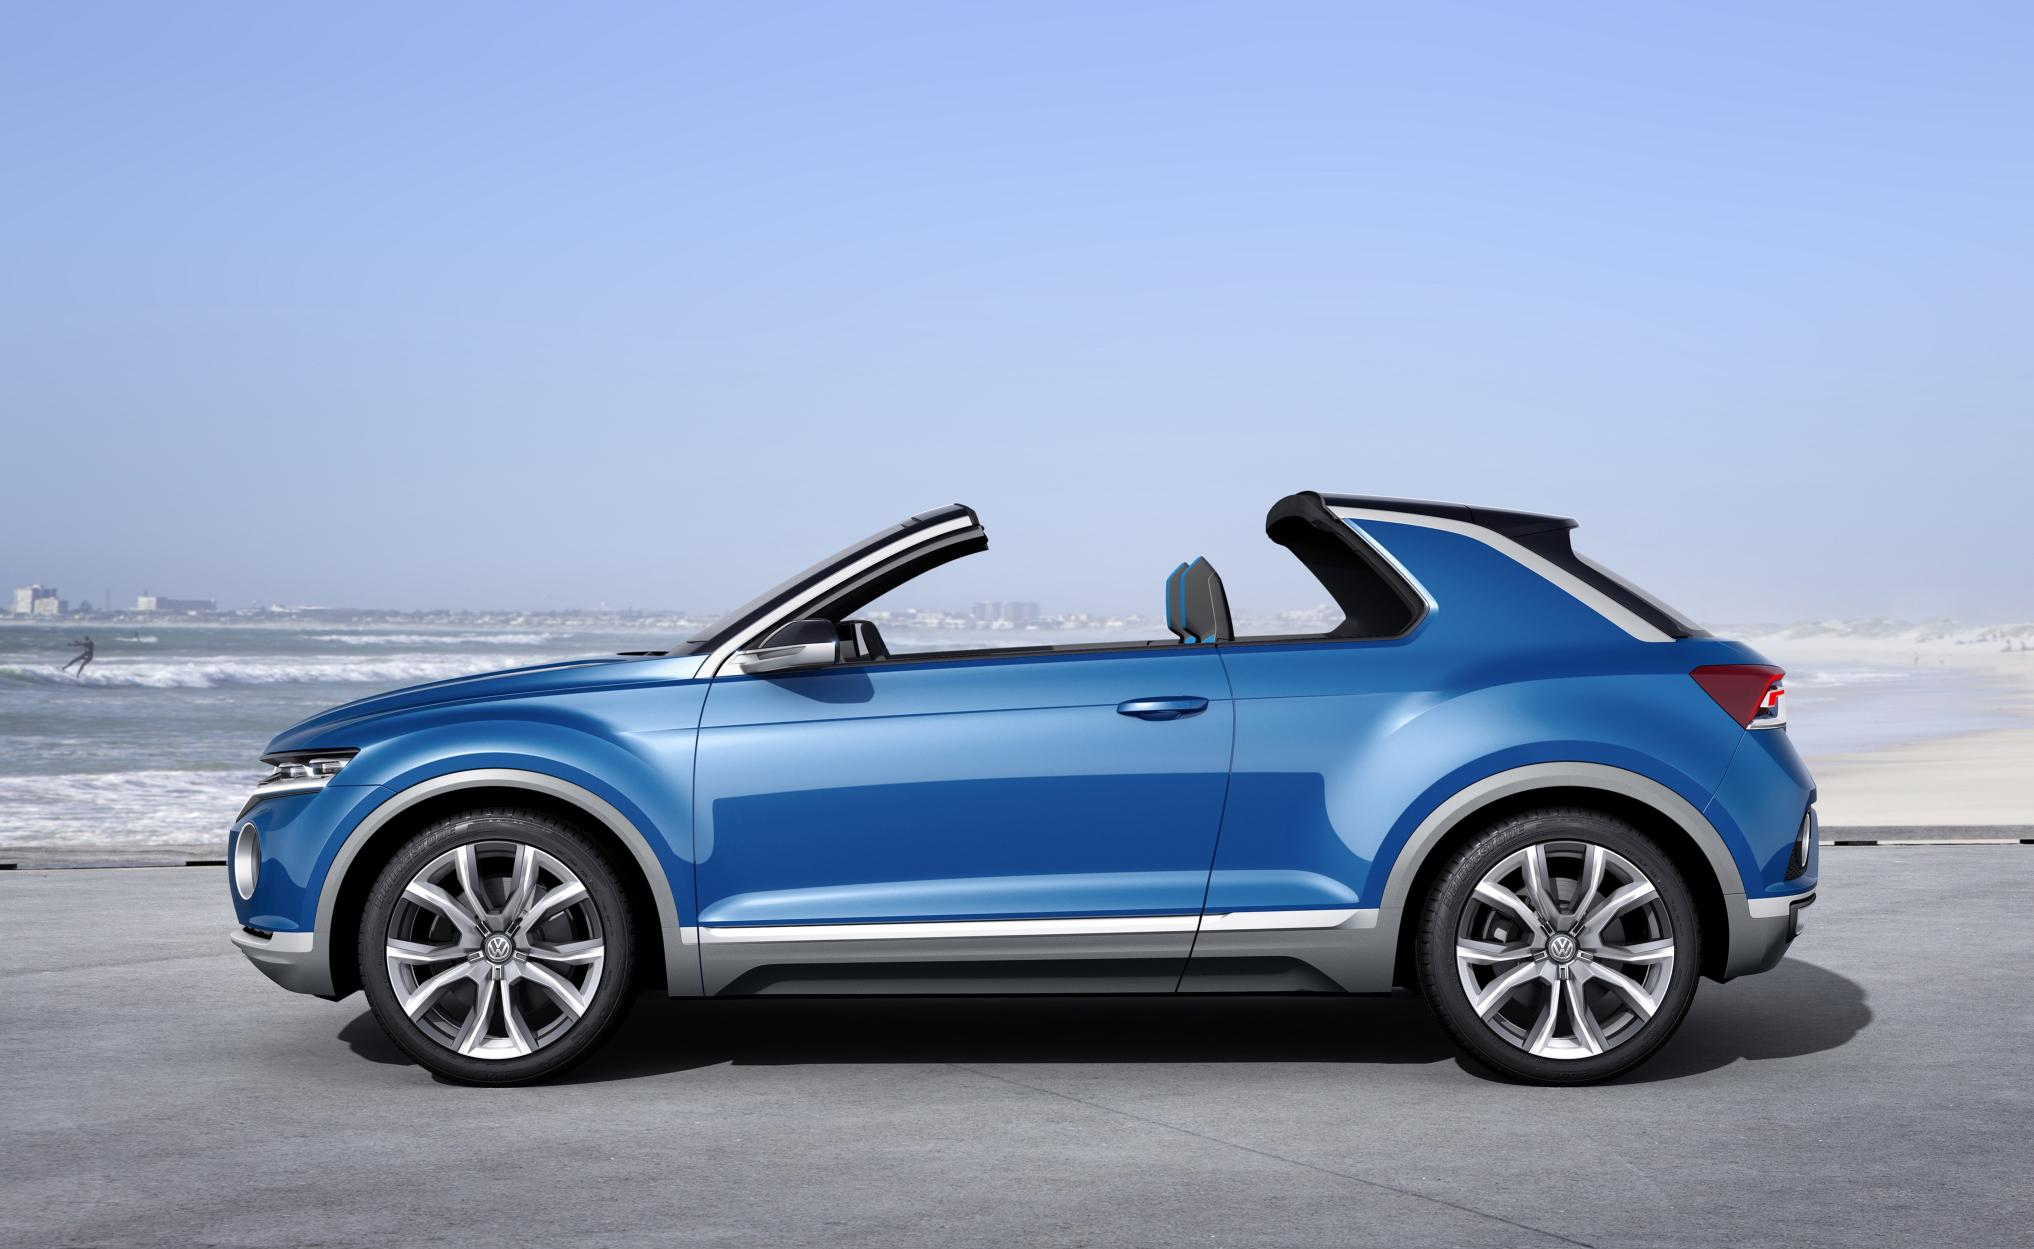 Volkswagen's Topless SUV: Latest News